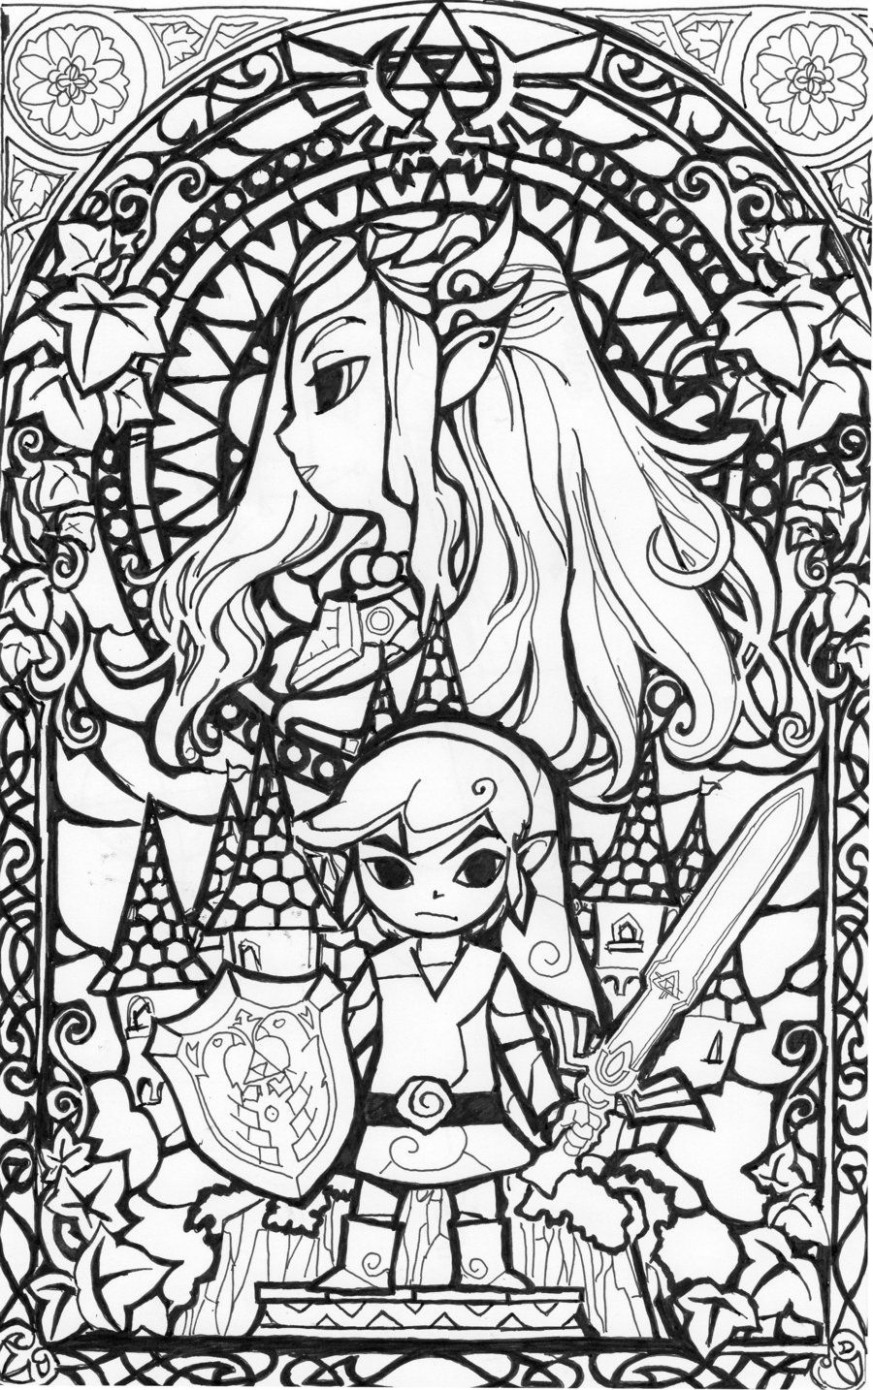 awesome stained glass Zelda coloring page! Gonna try this in ..